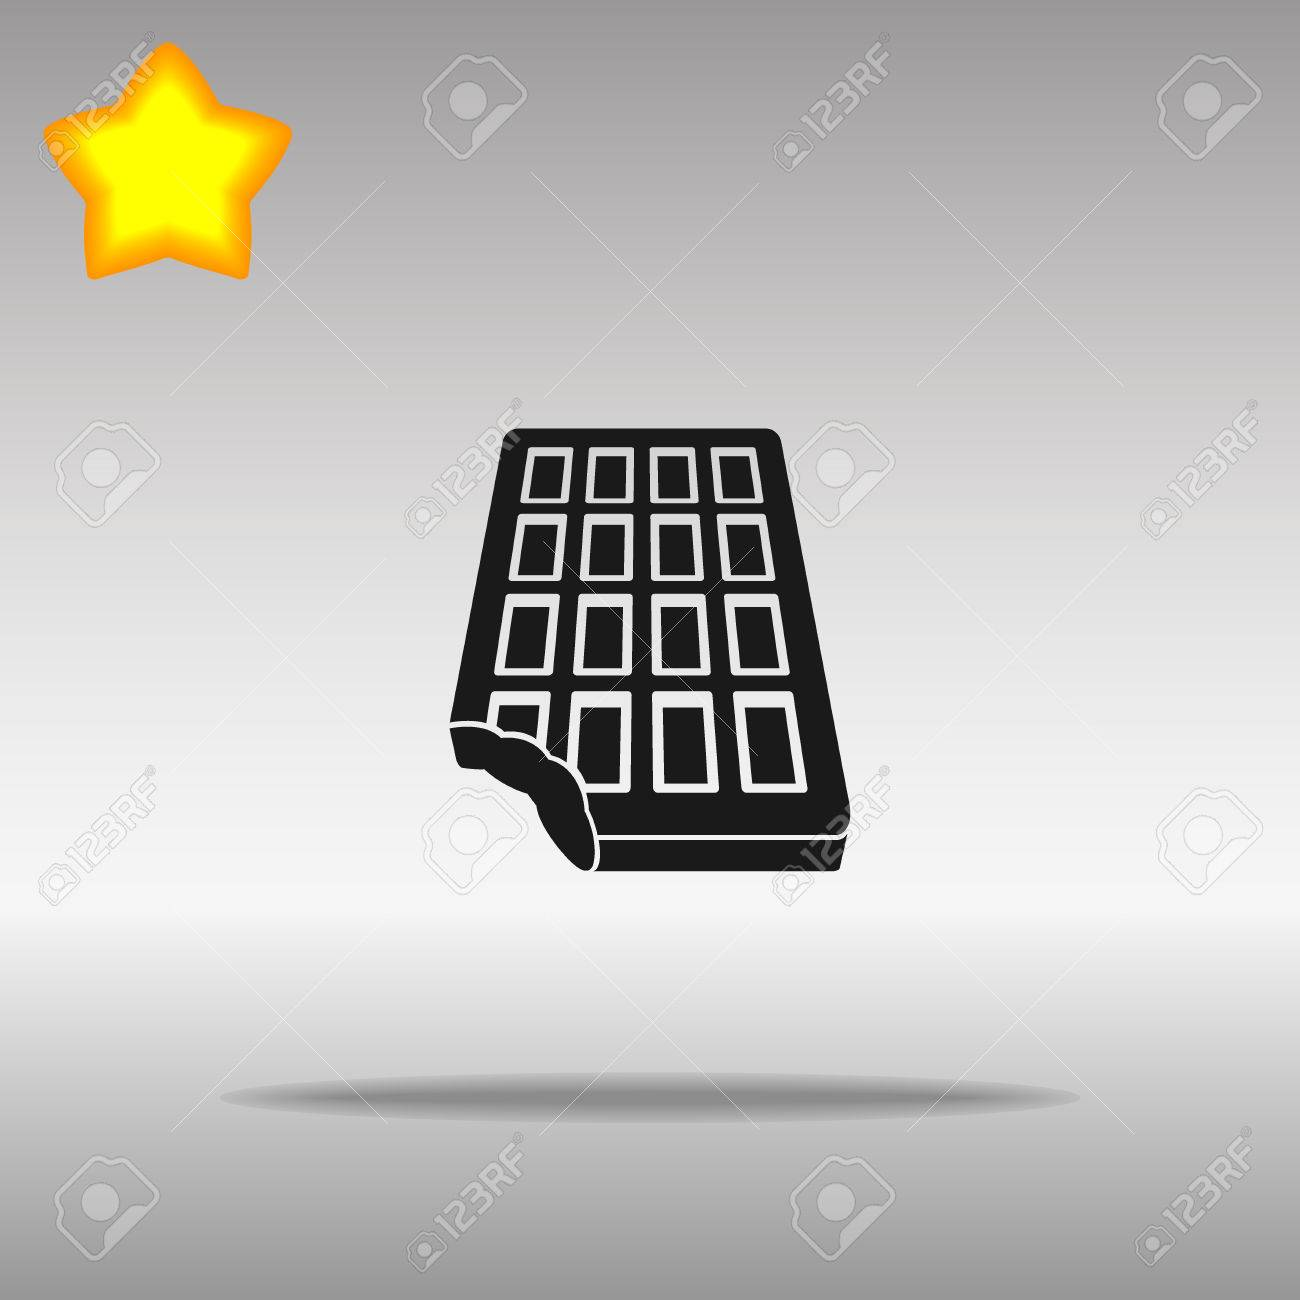 chocolate black Icon button logo symbol concept high quality on the gray background - 82176379